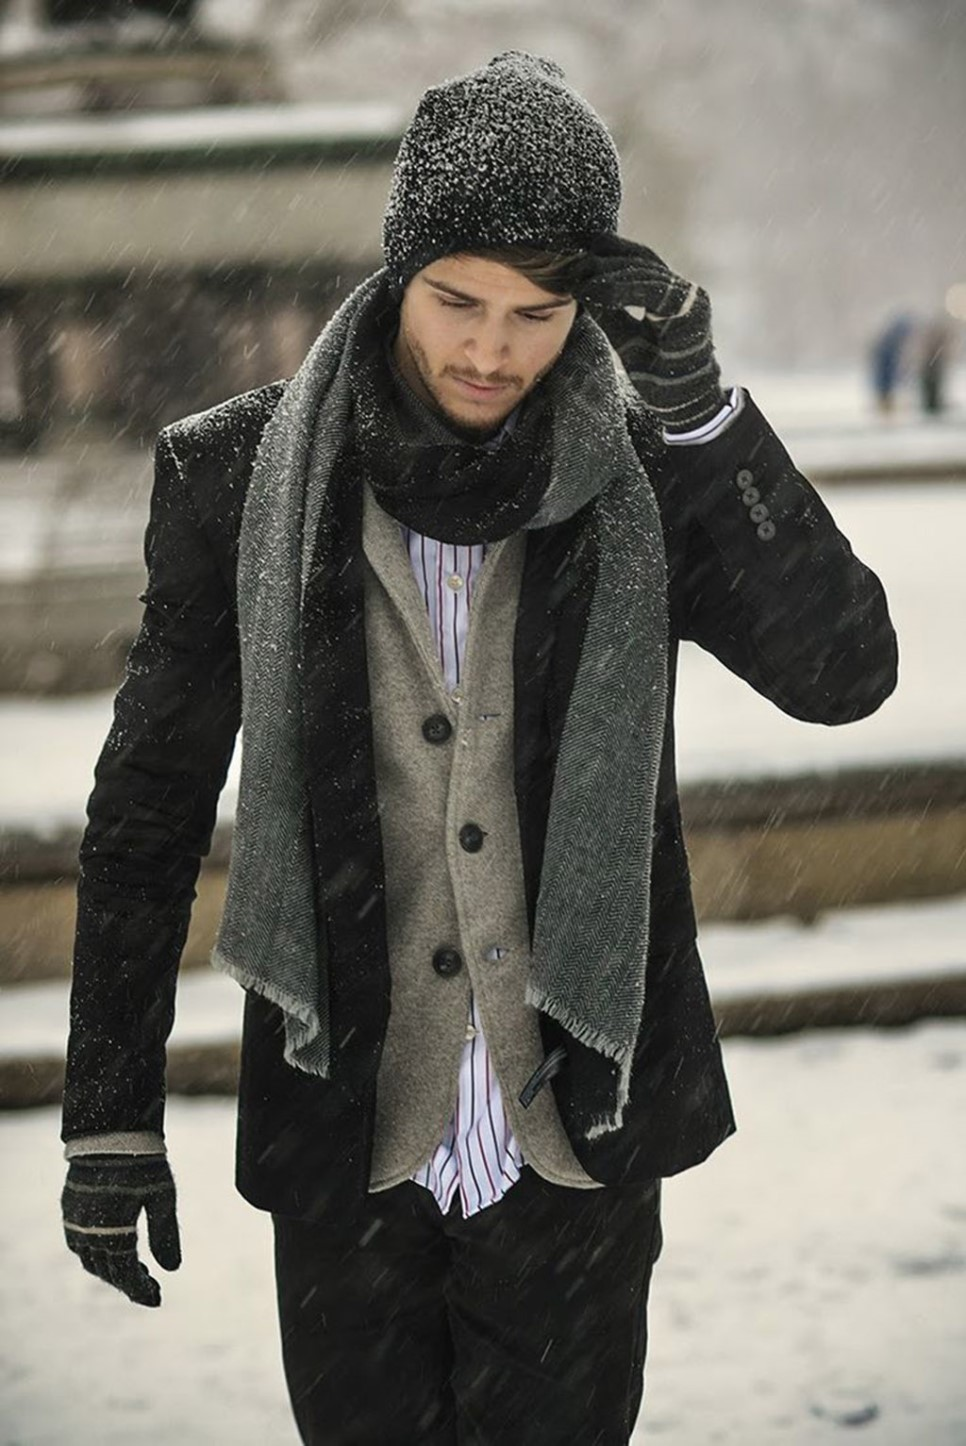 pea-coat-blazer-long-sleeve-shirt-jeans-beanie-scarf-gloves-original-4141.jpg